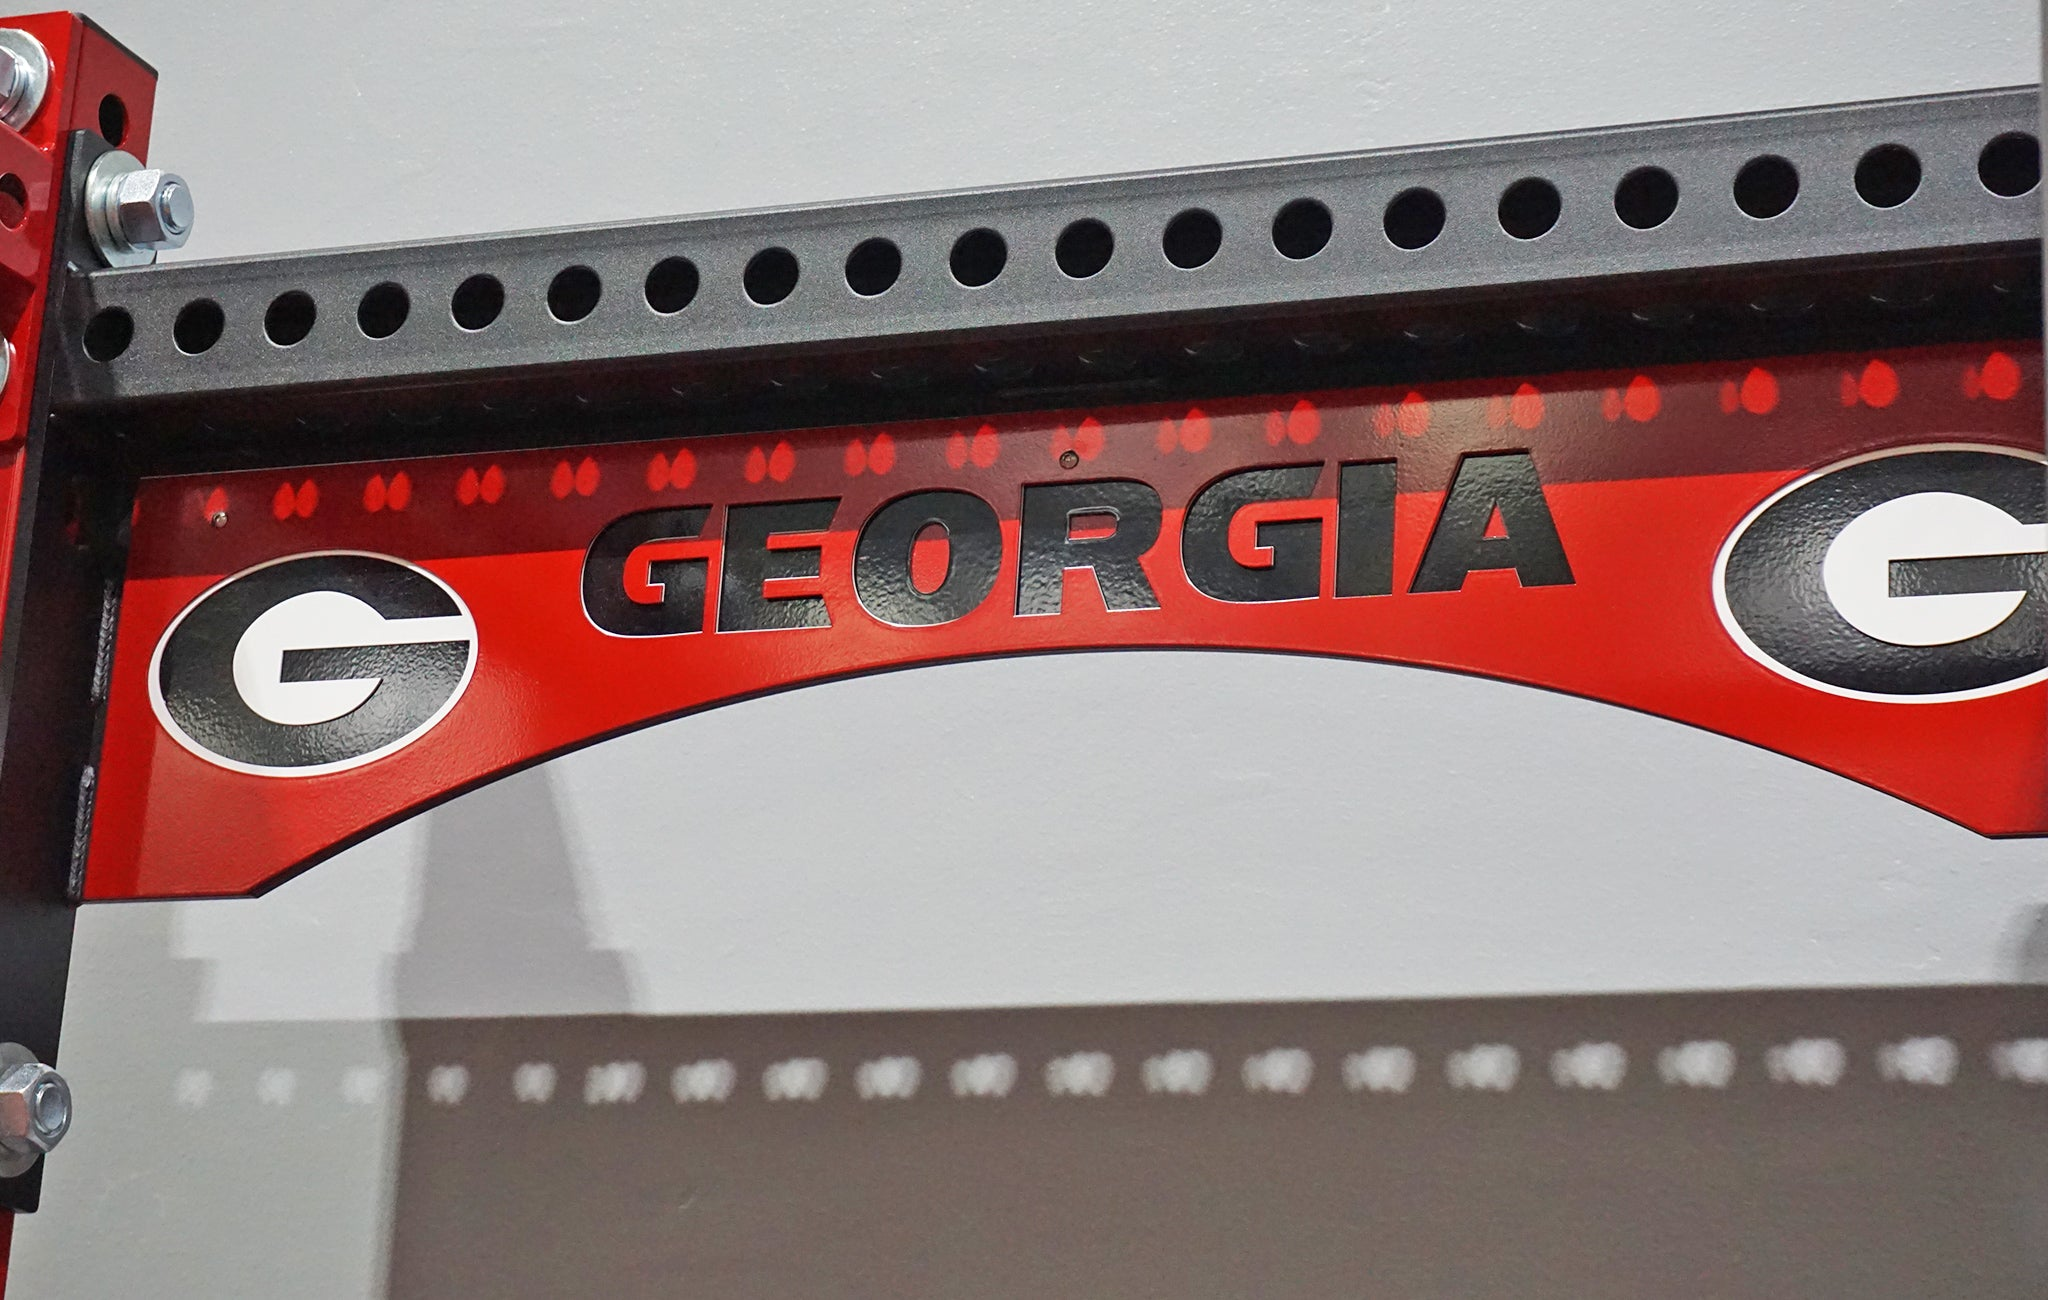 University of Georgia athletics